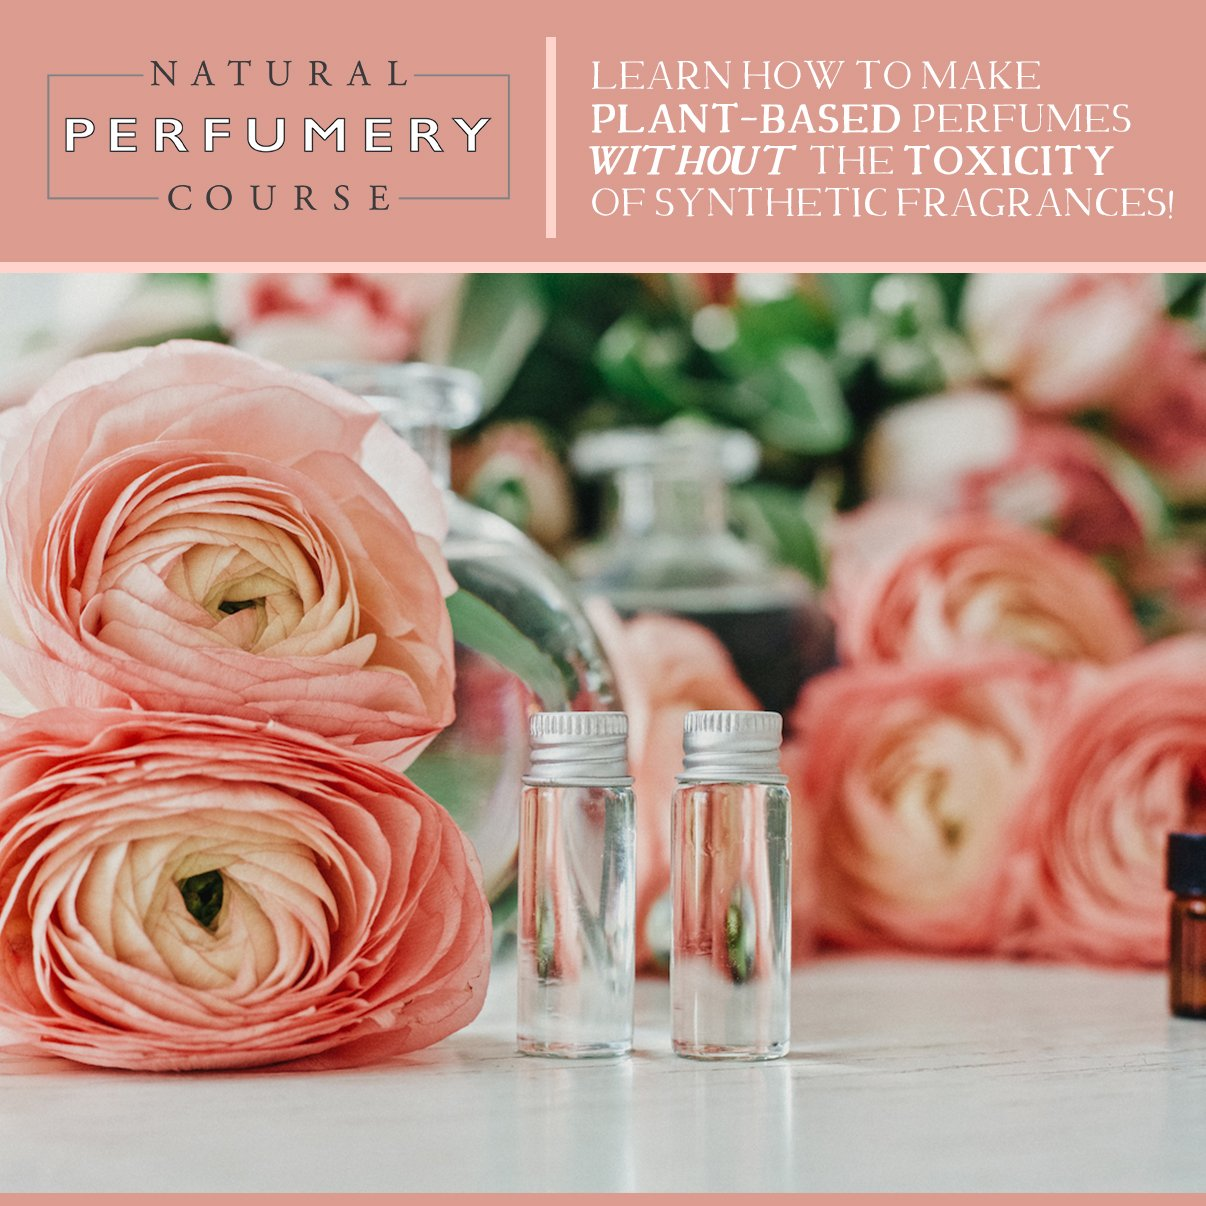 The Natural Perfumery Course will empower you to form a new type of relationship with plants that lets the plants speak for themselves with woodsy whispers, herbaceous harmonies and smoky secrets.